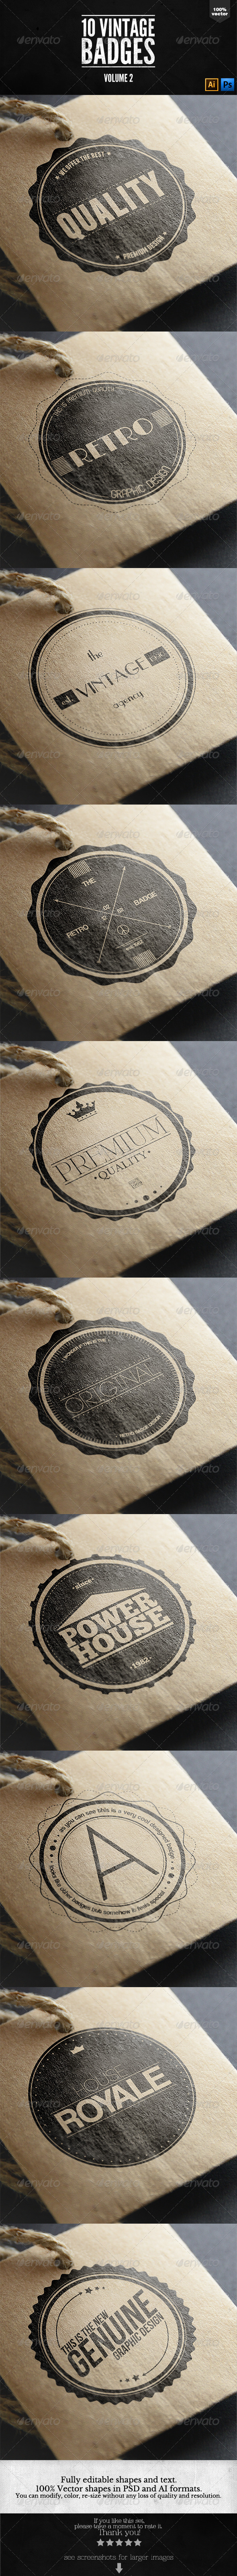 Vintage Labels and Badges Vol.2 - Badges & Stickers Web Elements